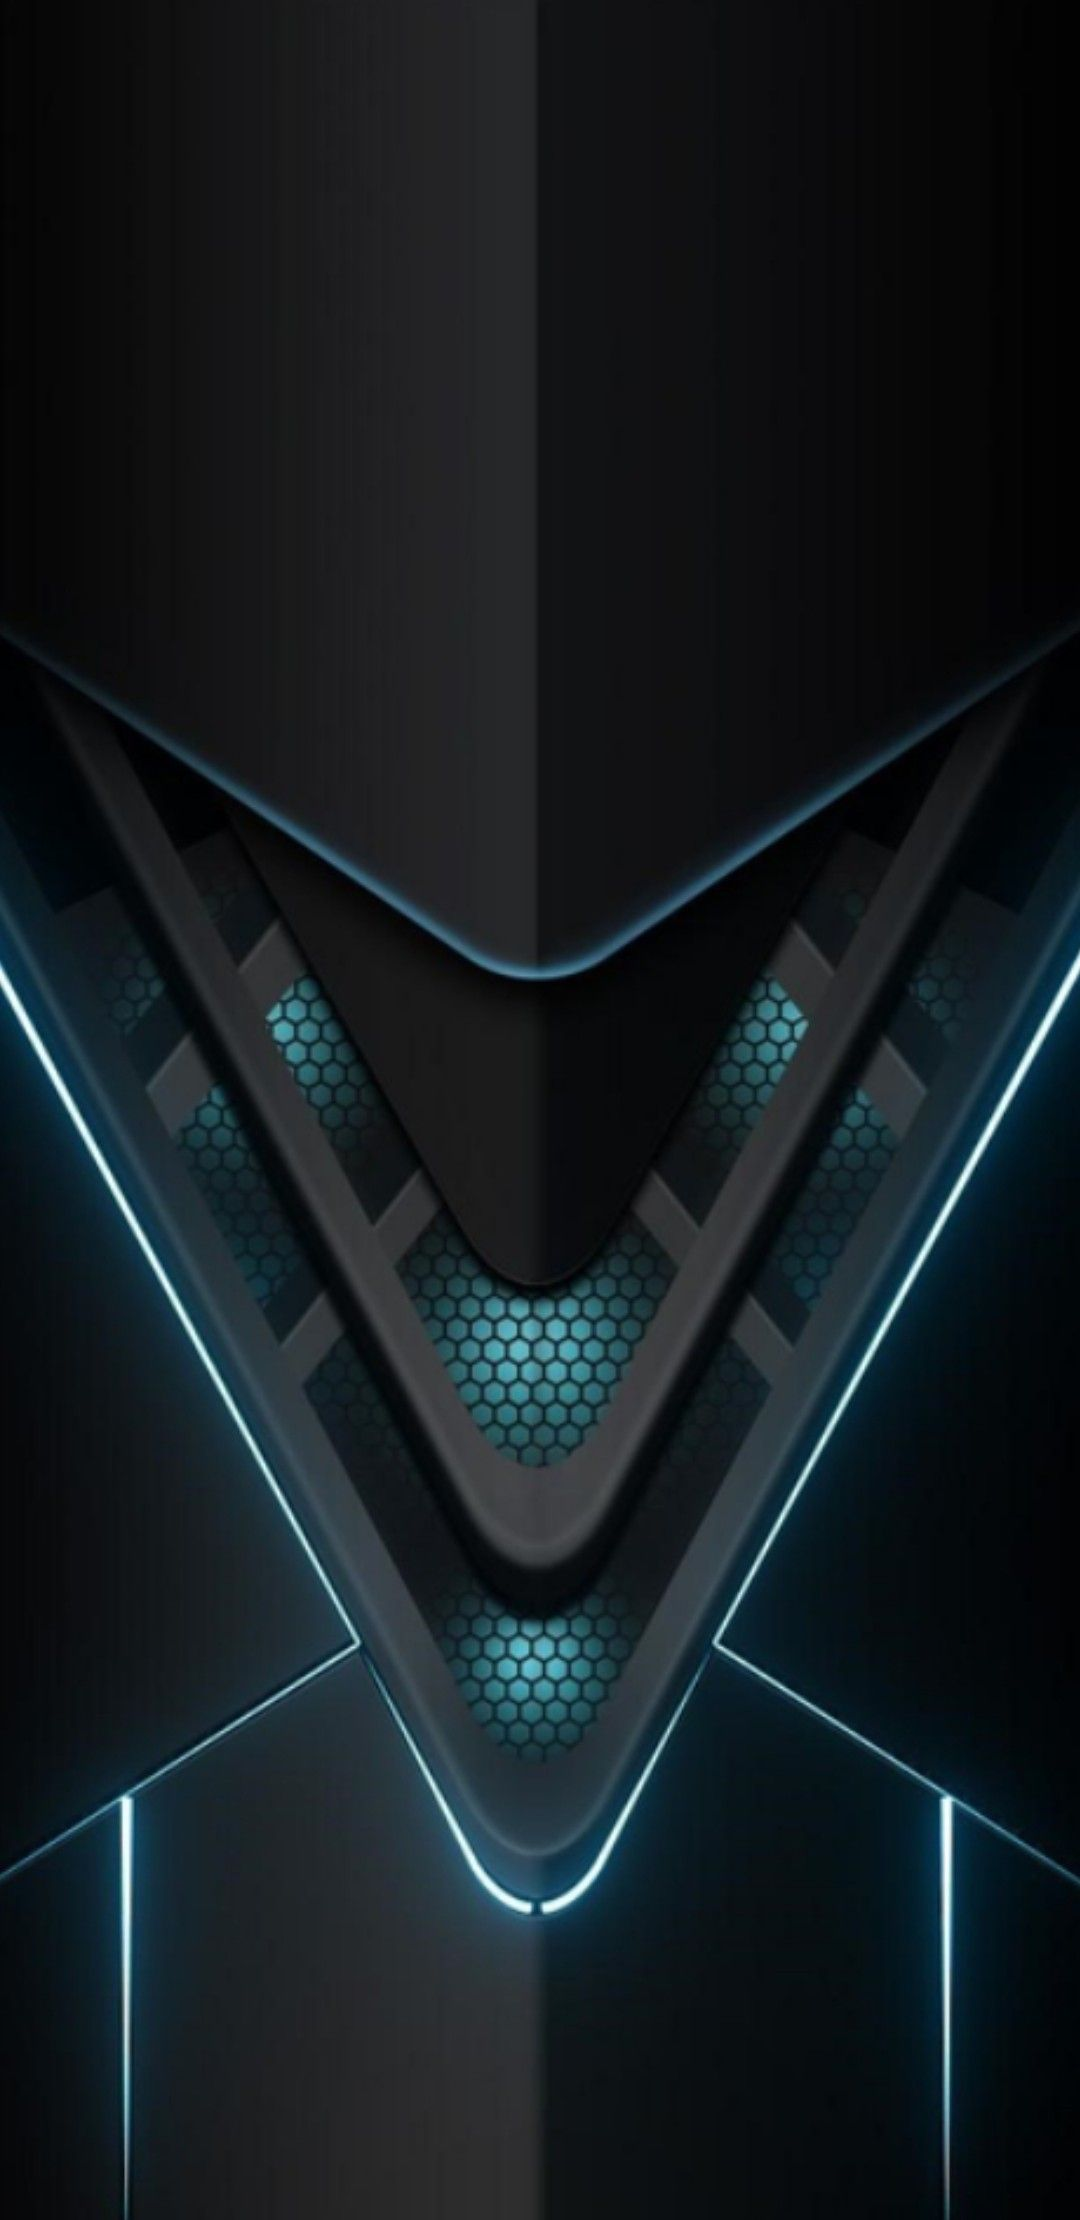 Pin By Fid Don On Teal Phone Wallpaper Design Technology Wallpaper Graphic Wallpaper